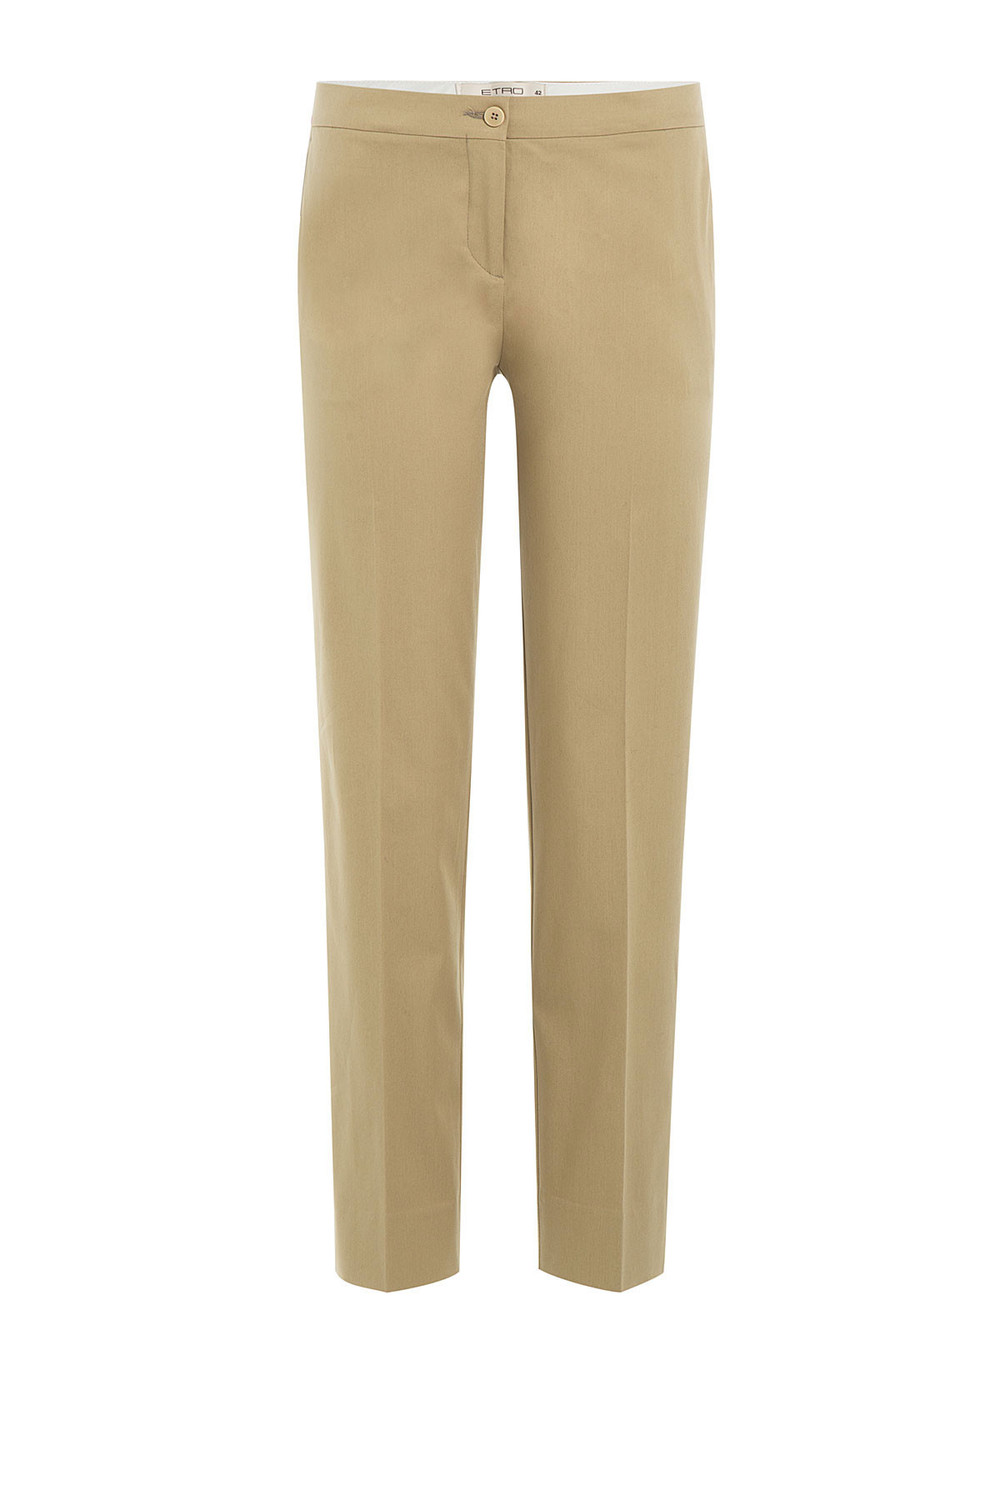 how to get mourner trousers